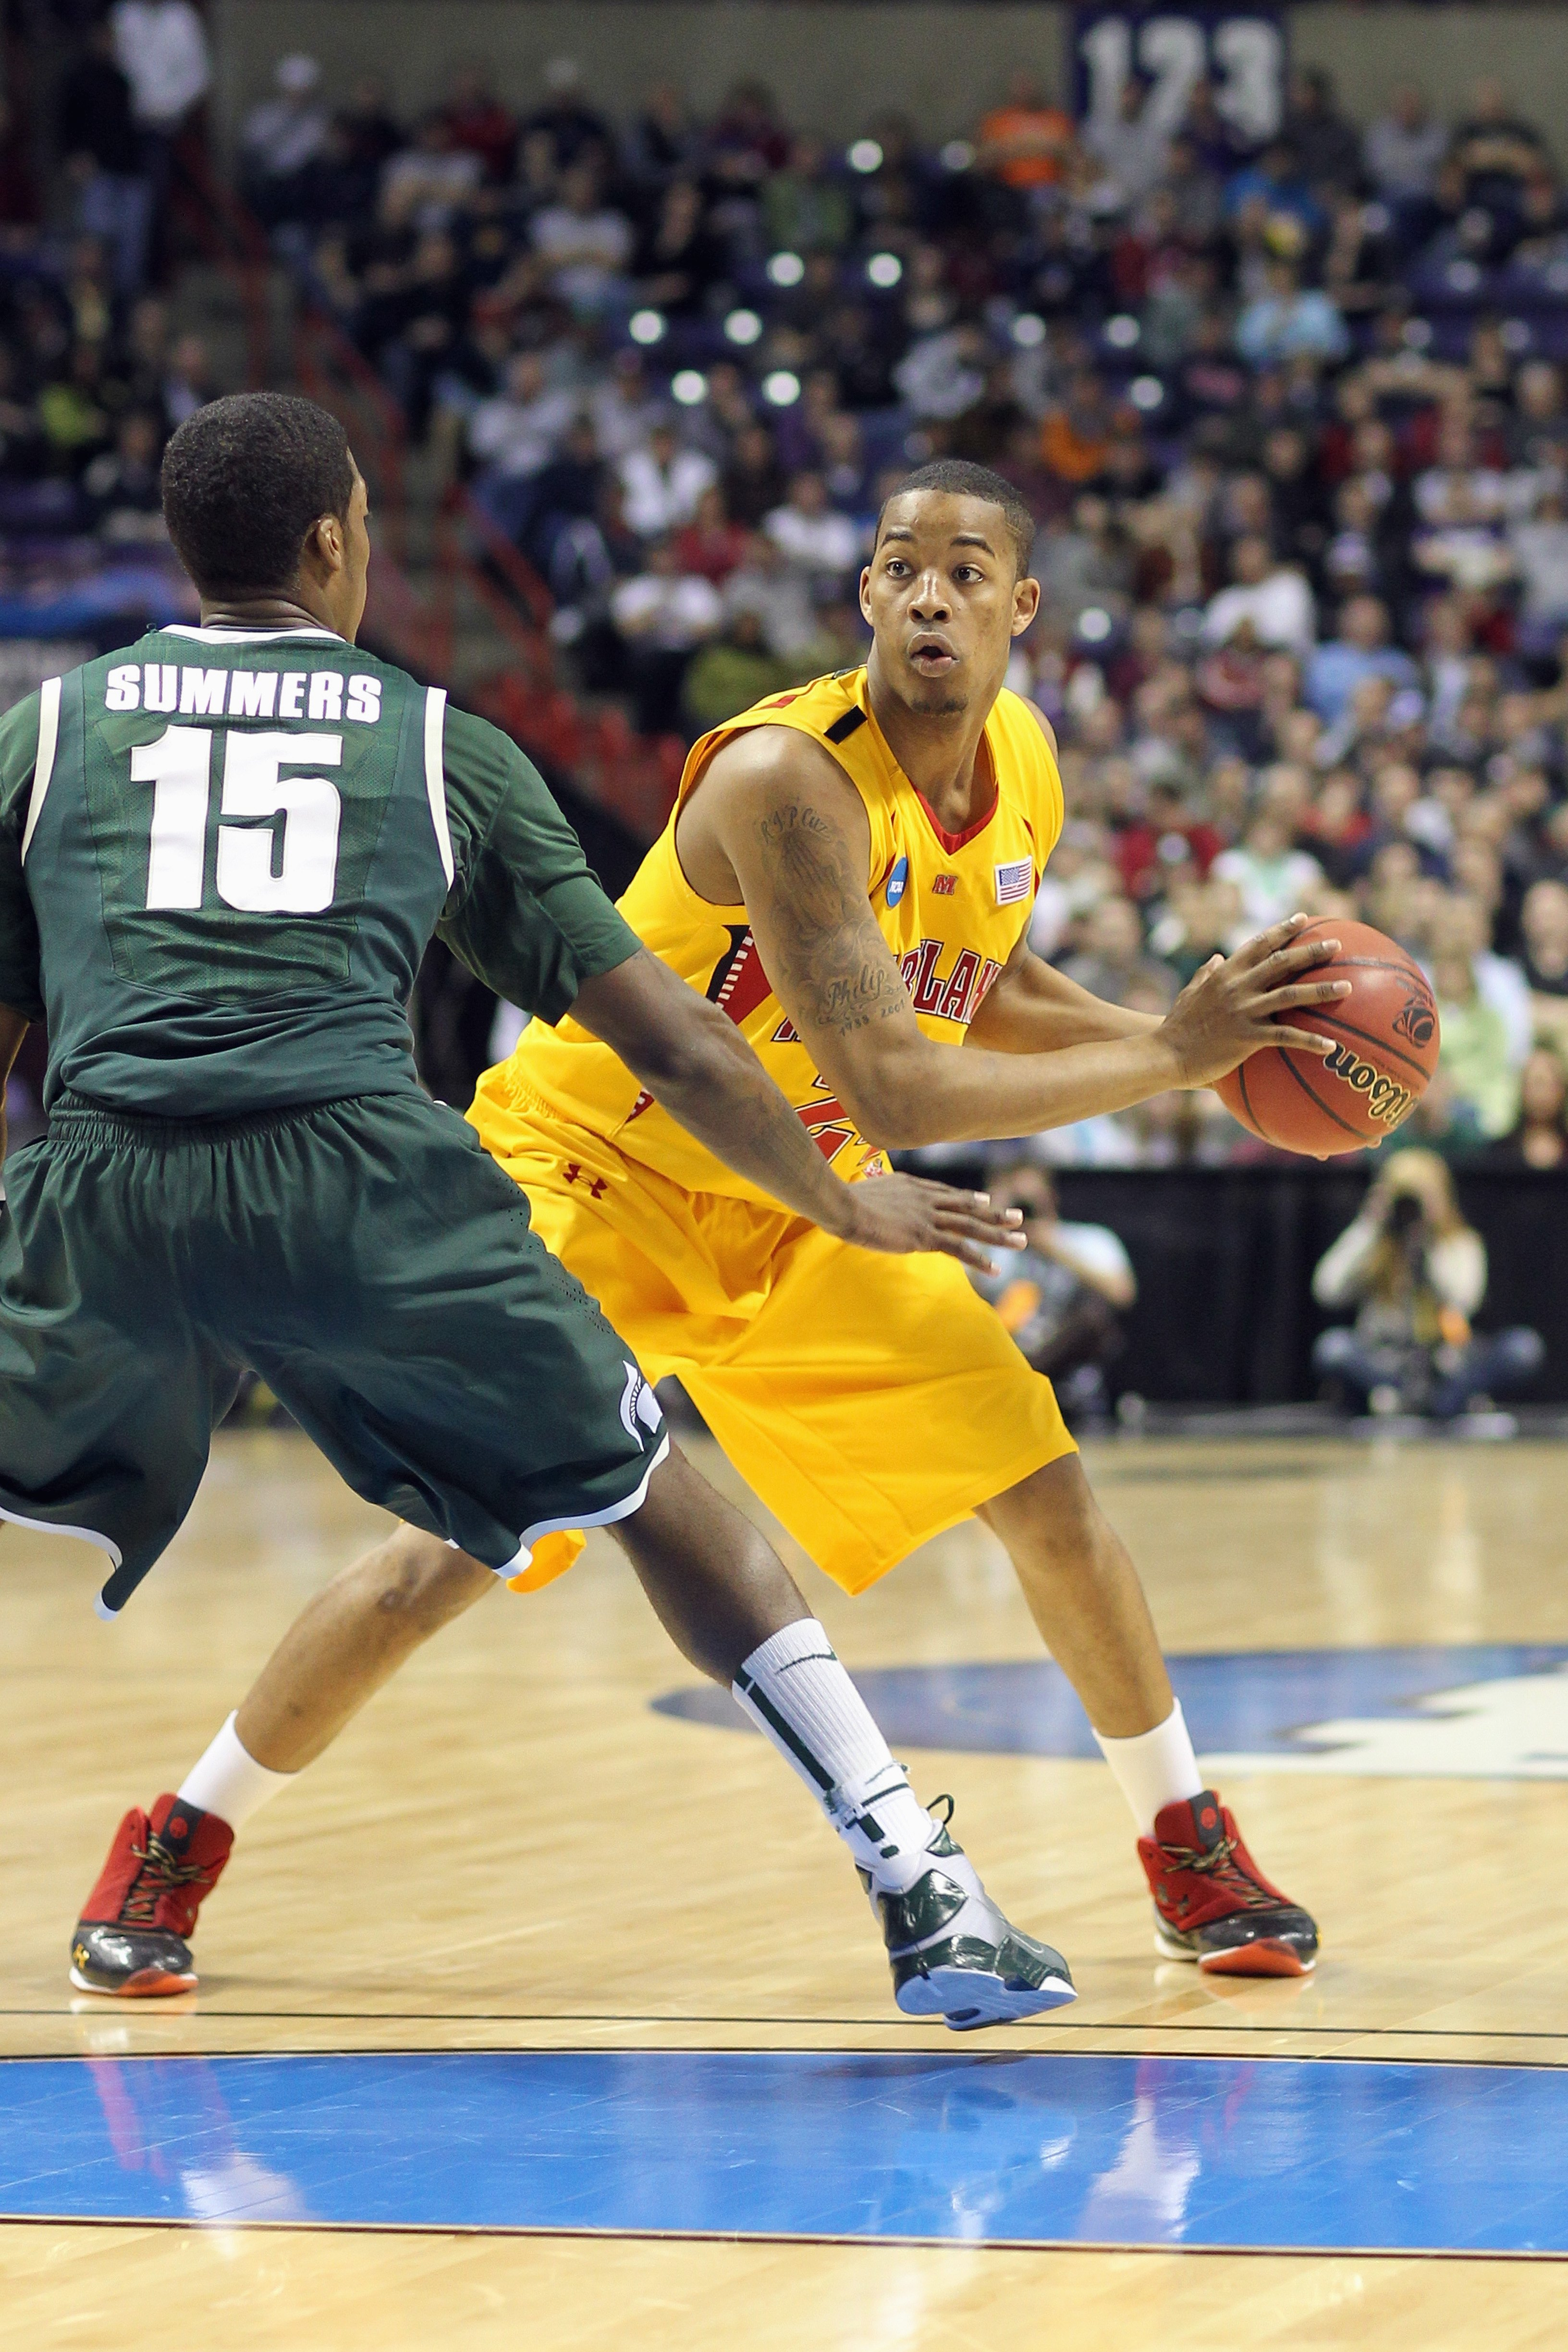 SPOKANE, WA - MARCH 21:  Cliff Tucker #24 of the Maryland Terrapins looks to move the ball against the Michigan State Spartans during the second round of the 2010 NCAA men's basketball tournament at the Spokane Arena on March 21, 2010 in Spokane, Washingt